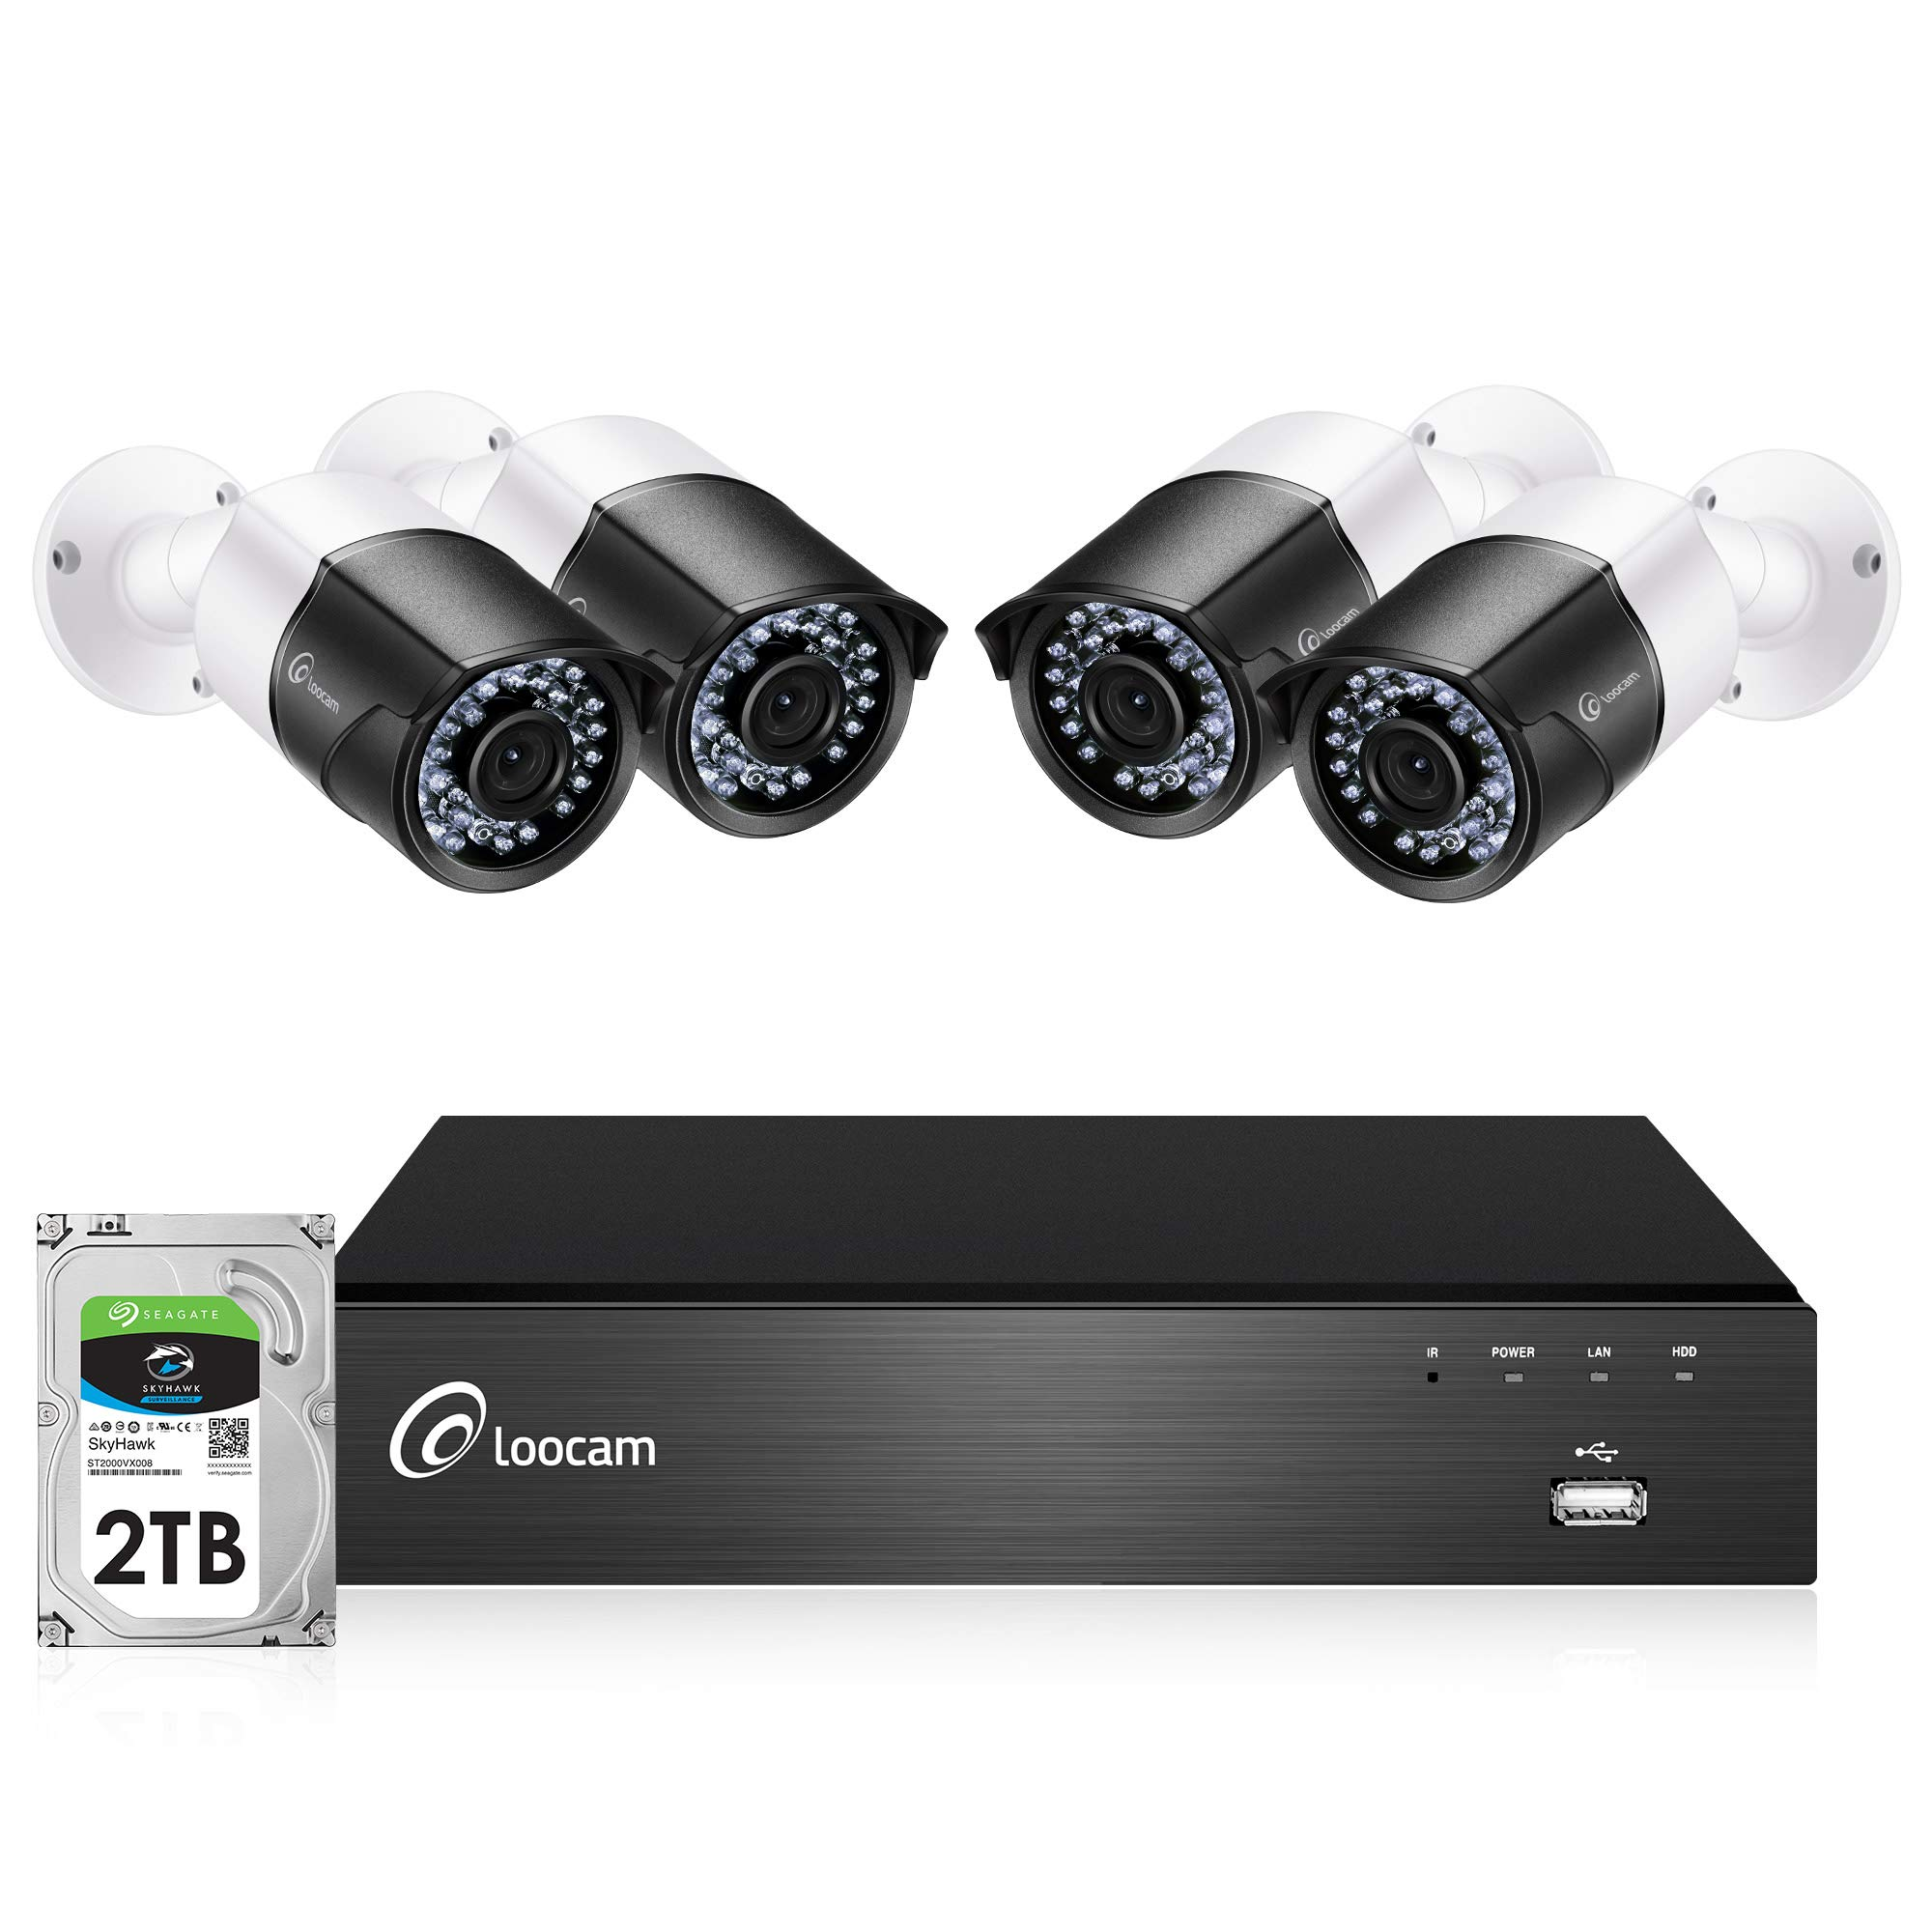 Loocam 1080p 8CH PoE Video Surveillance System, 4pcs Wired Outdoor 1080p PoE IP Cameras, 1080p 8 Channel NVR Security System with 2TB HDD